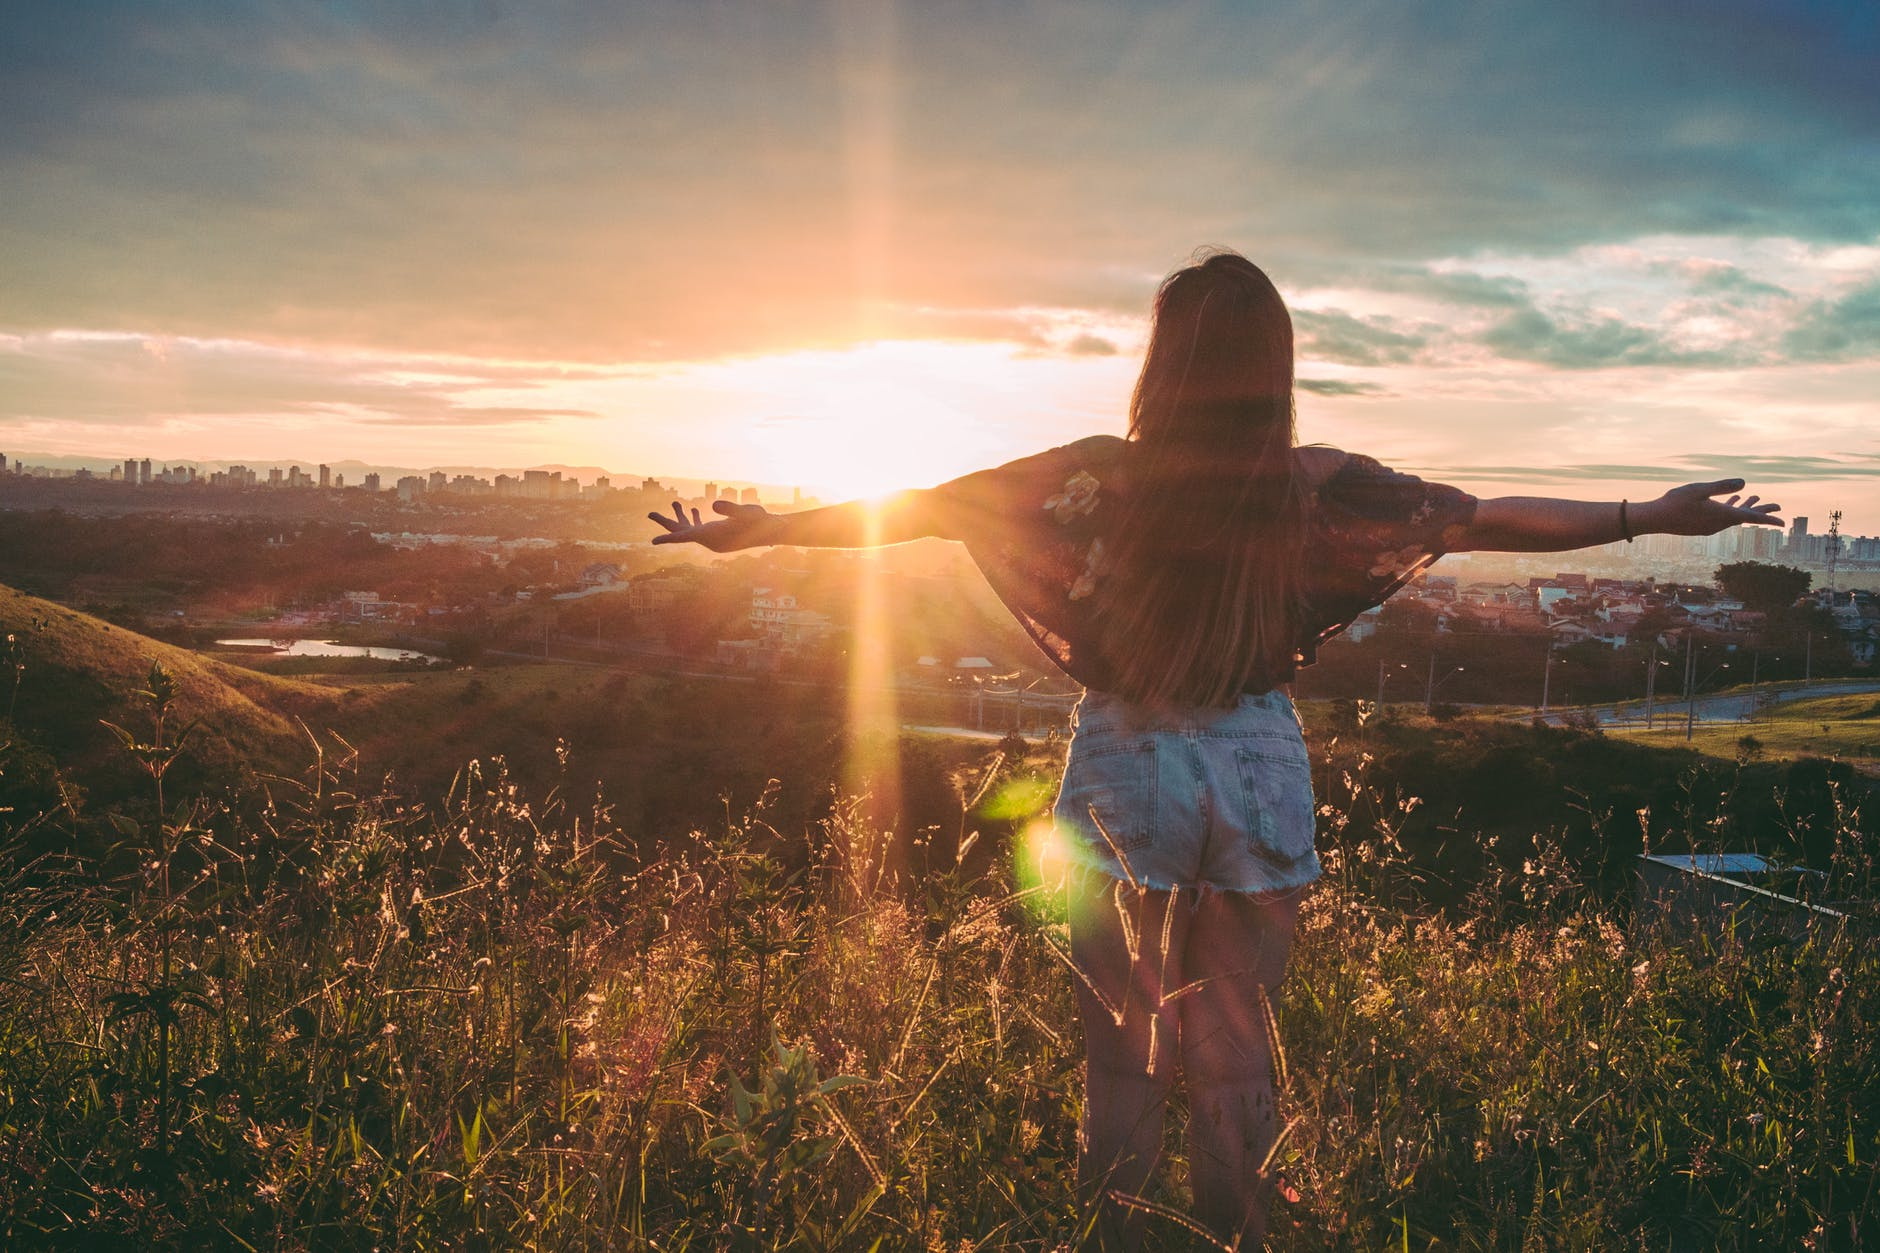 How to Live With Meaning Steps for Better Life